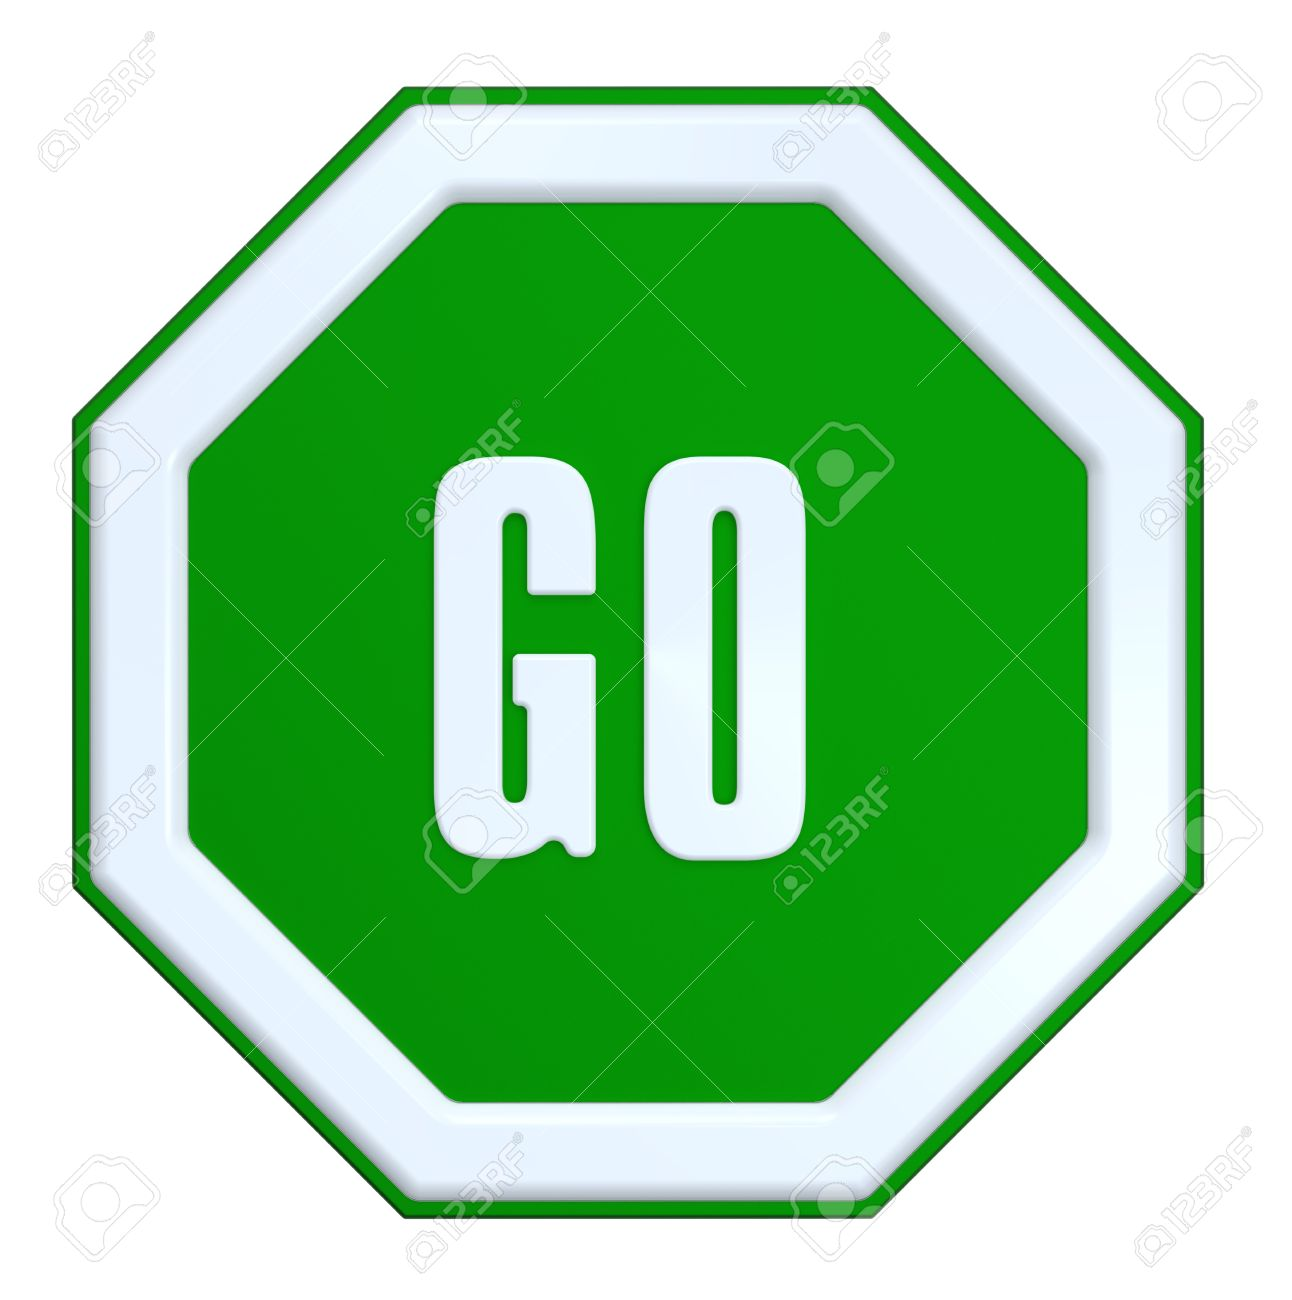 Go Sign Isolated On White Computer Generated 3d Photo Rendering